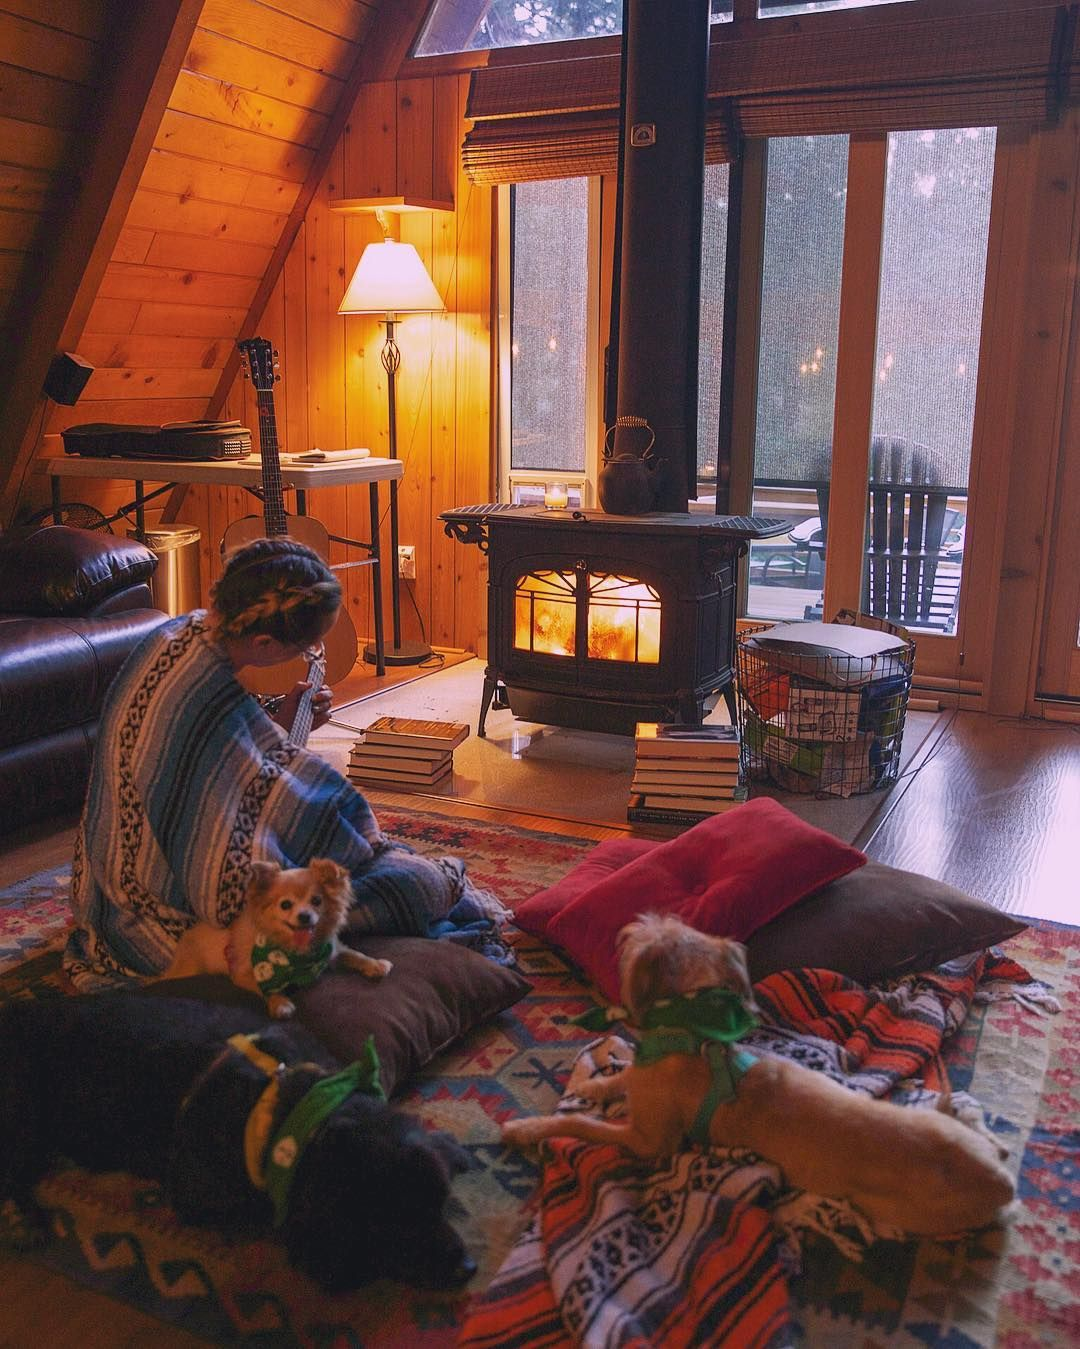 perfect space for a cold rainy day | Cozy rainy day, Getaway ... on riverside home, sunny day home, garden home, easter home, gloomy day home, cloudy day home, fun home, health home, black and white home, paul reubens home, cold home, blu home, farm home,